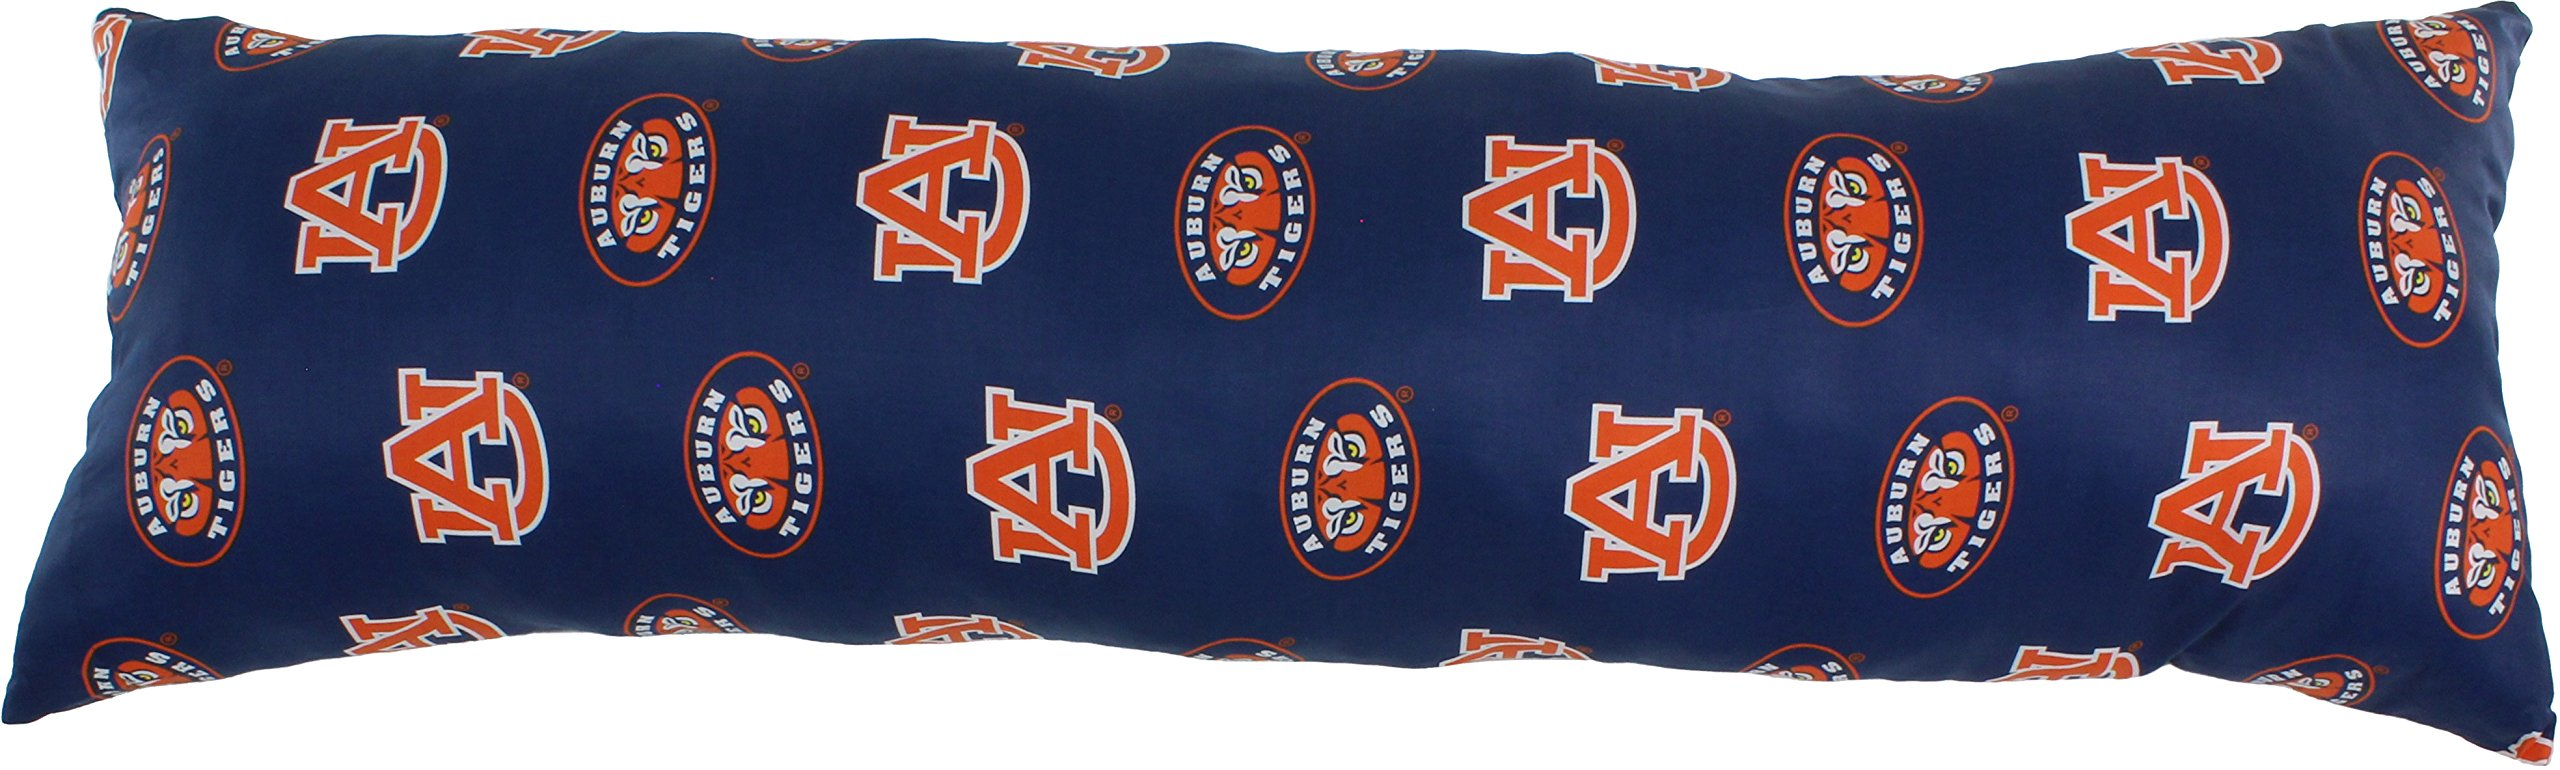 College Covers Auburn Tigers Printed Body Pillow, 20'' x 60''